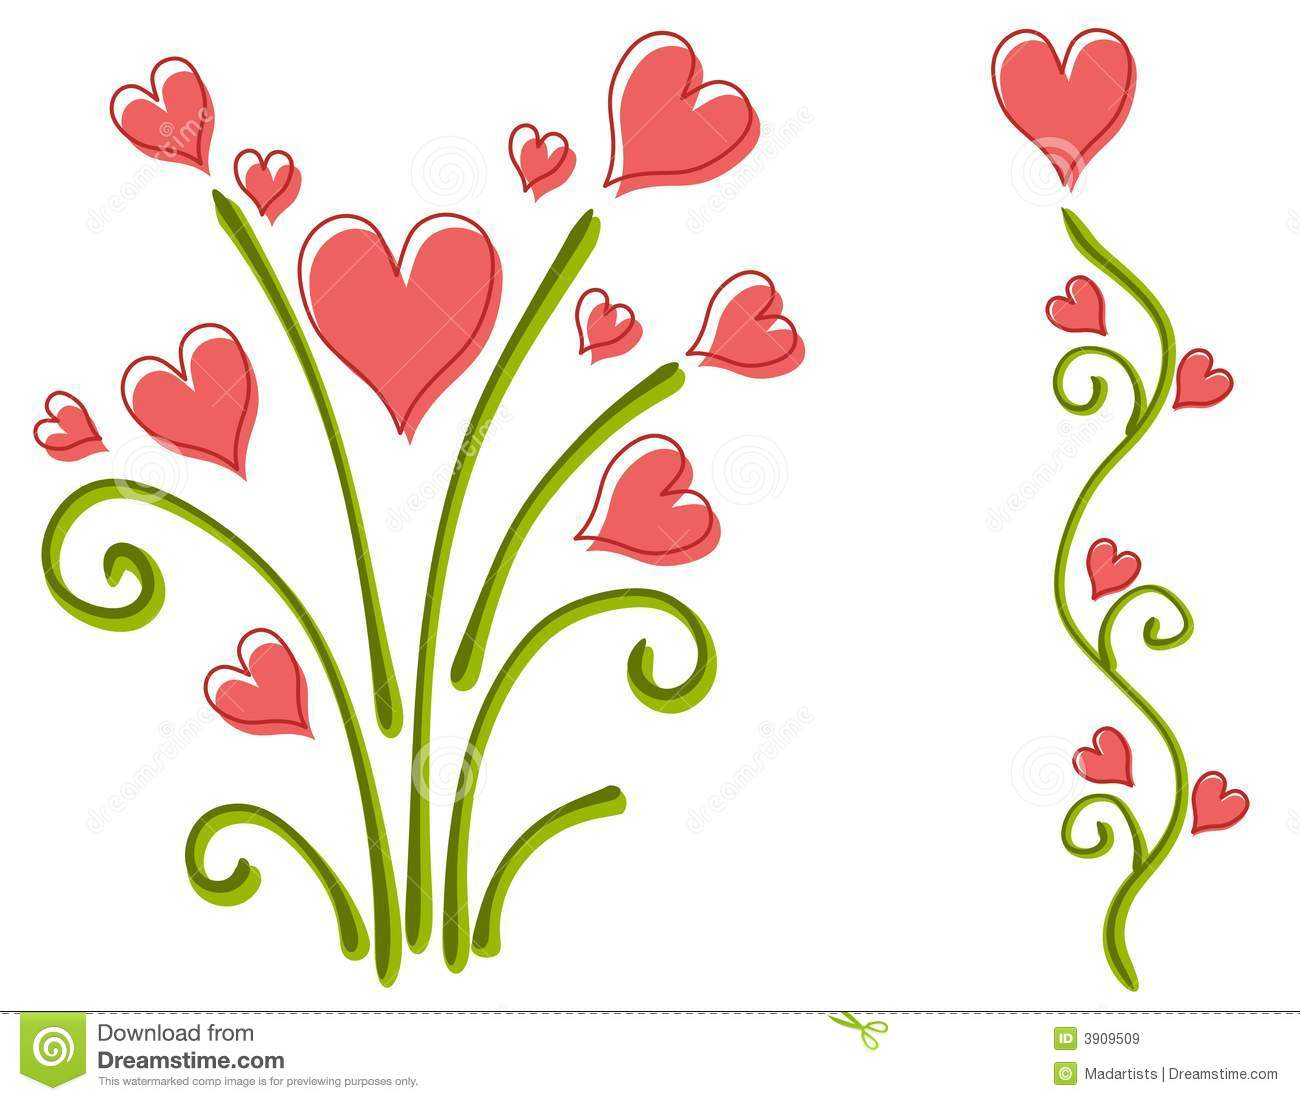 Floral clipart flower heart Clipart%20flowers%20and%20hearts Clipart Hearts Free Clipart